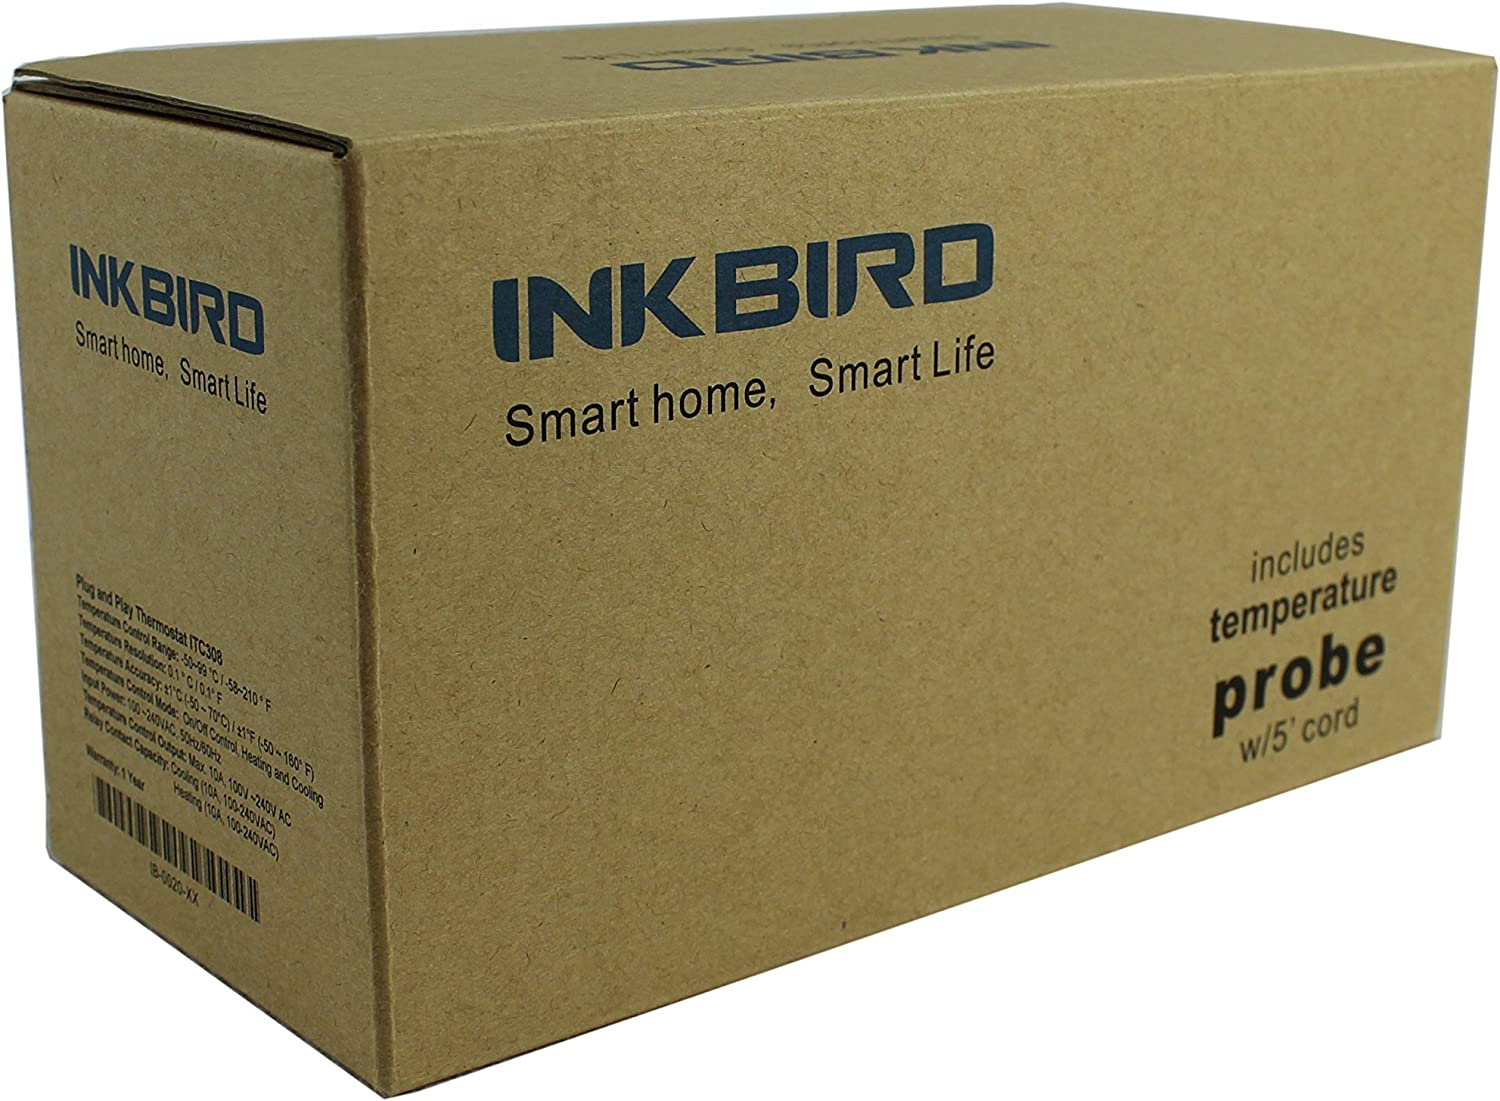 Inkbird ITC-308 Digital Temperature Controller Outlet Thermostat 2-stage 1100W Renewed with Sensor